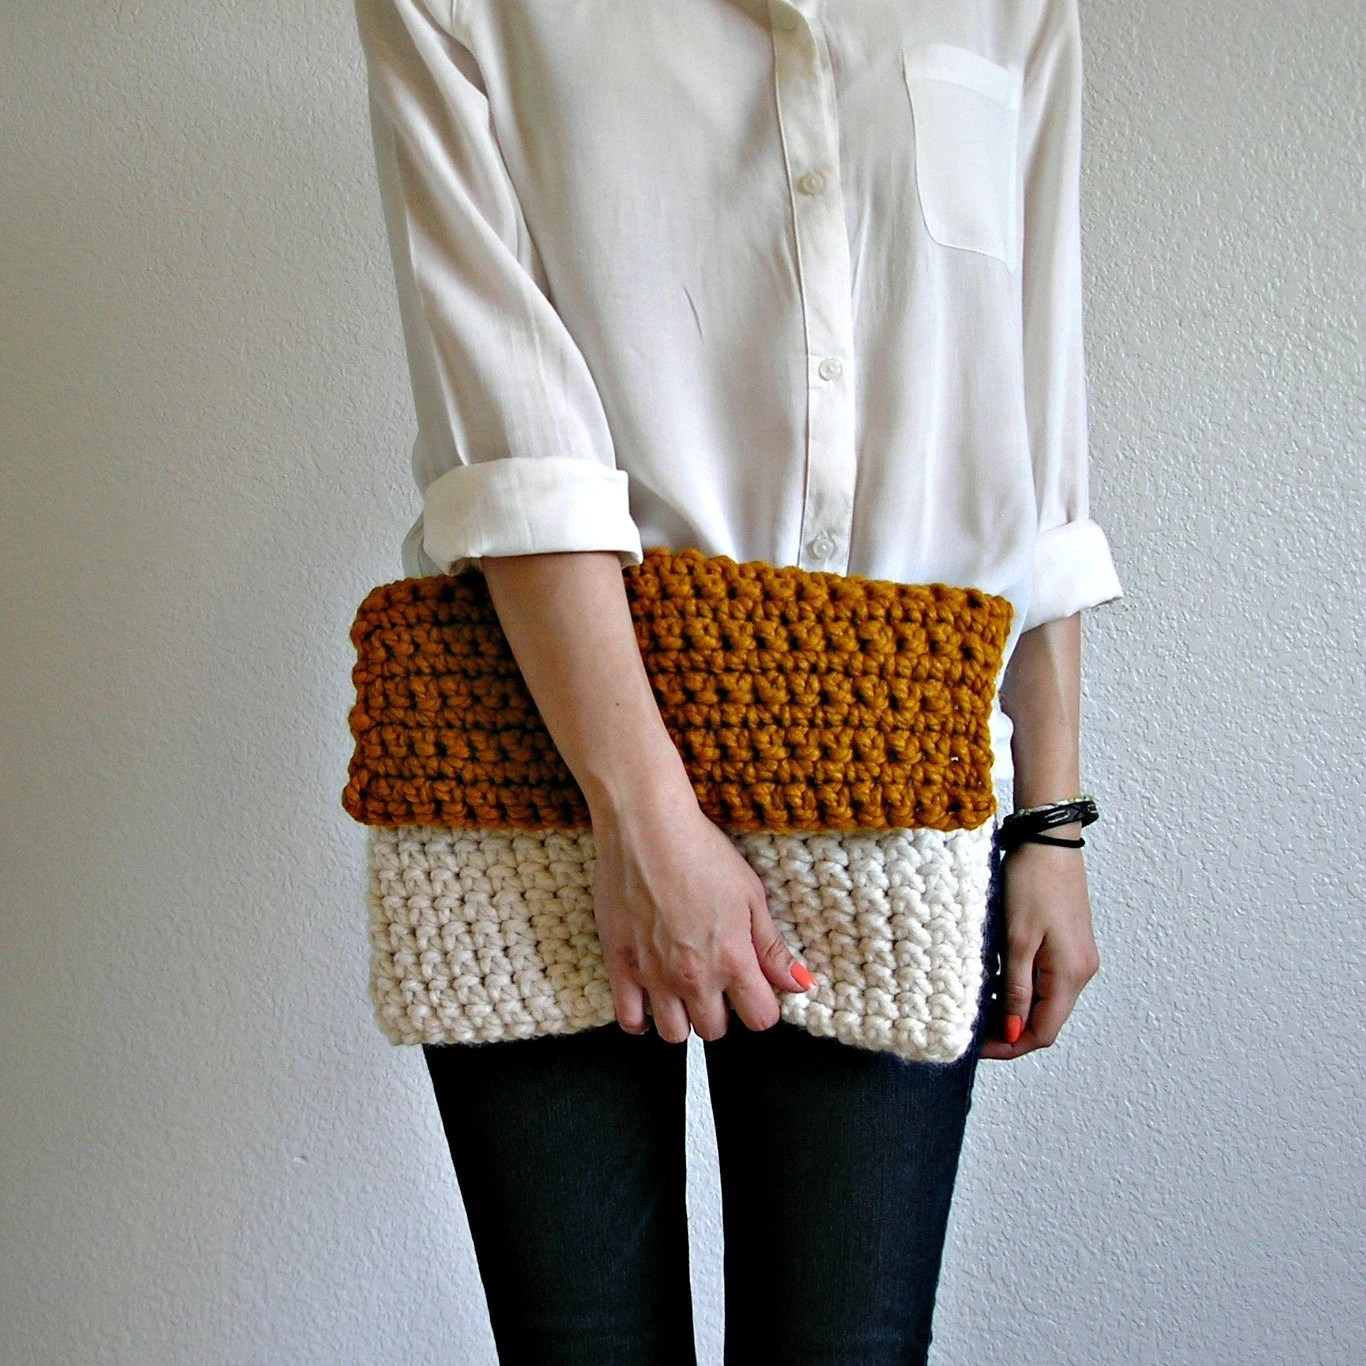 The Colmar Clutch - Fisherman & Butterscotch, knit crochet color blocking clutch, fold over clutch, size MEDIUM